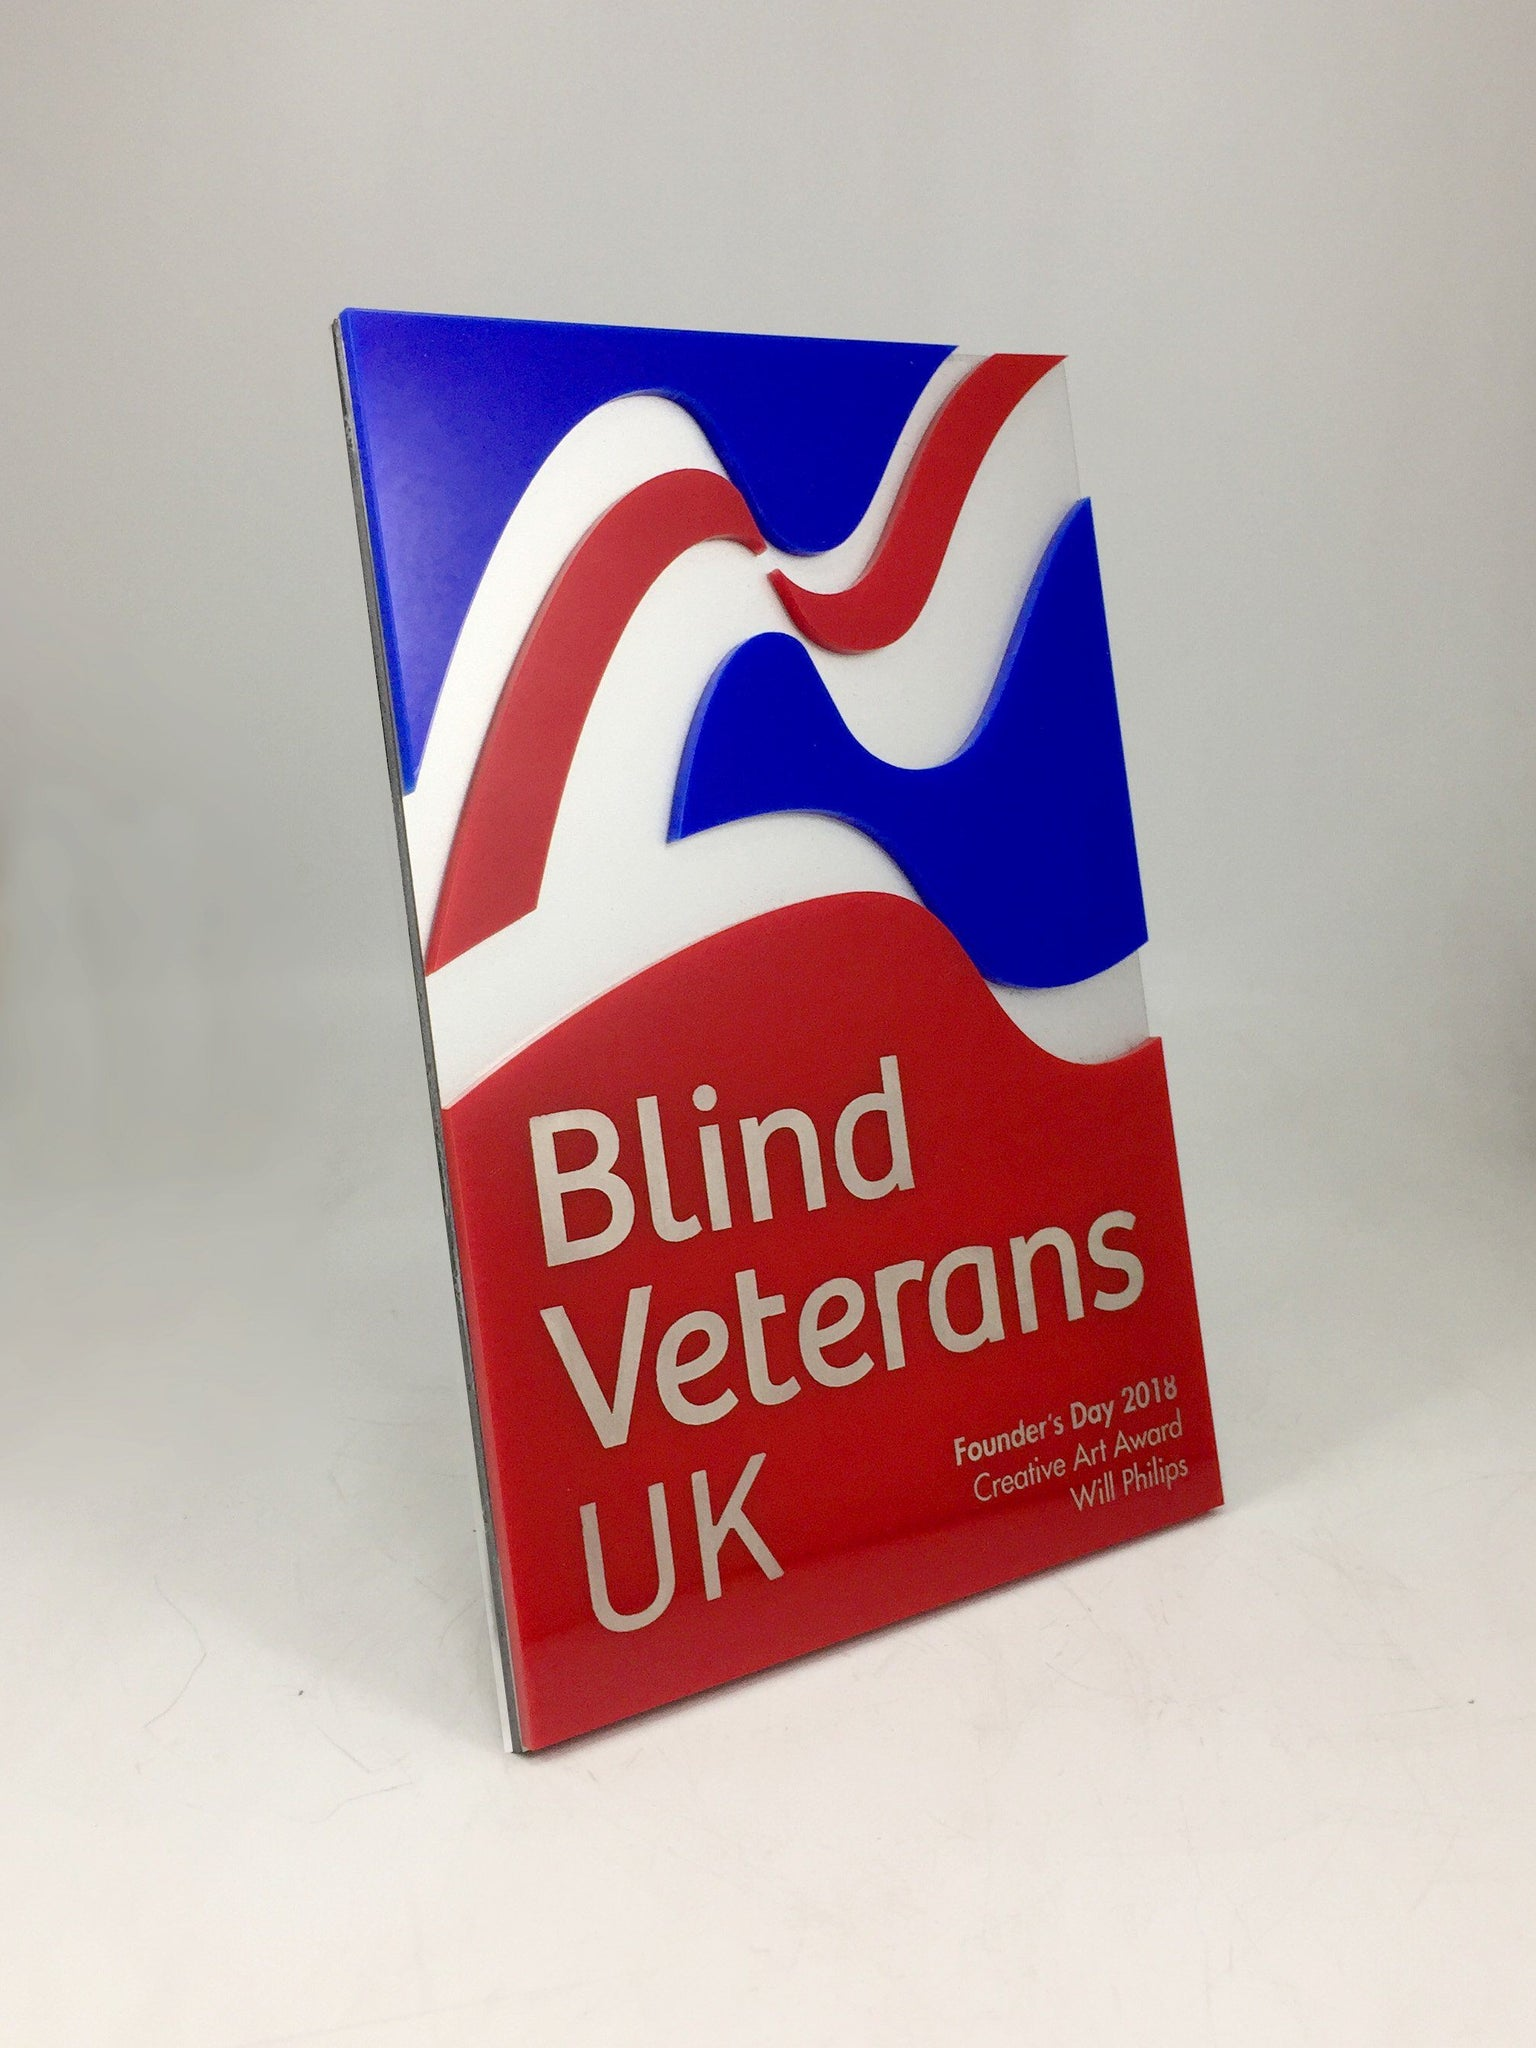 Blind Veterans UK Laminated Acrylic Award Bespoke Acrylic Awards Creative Awards